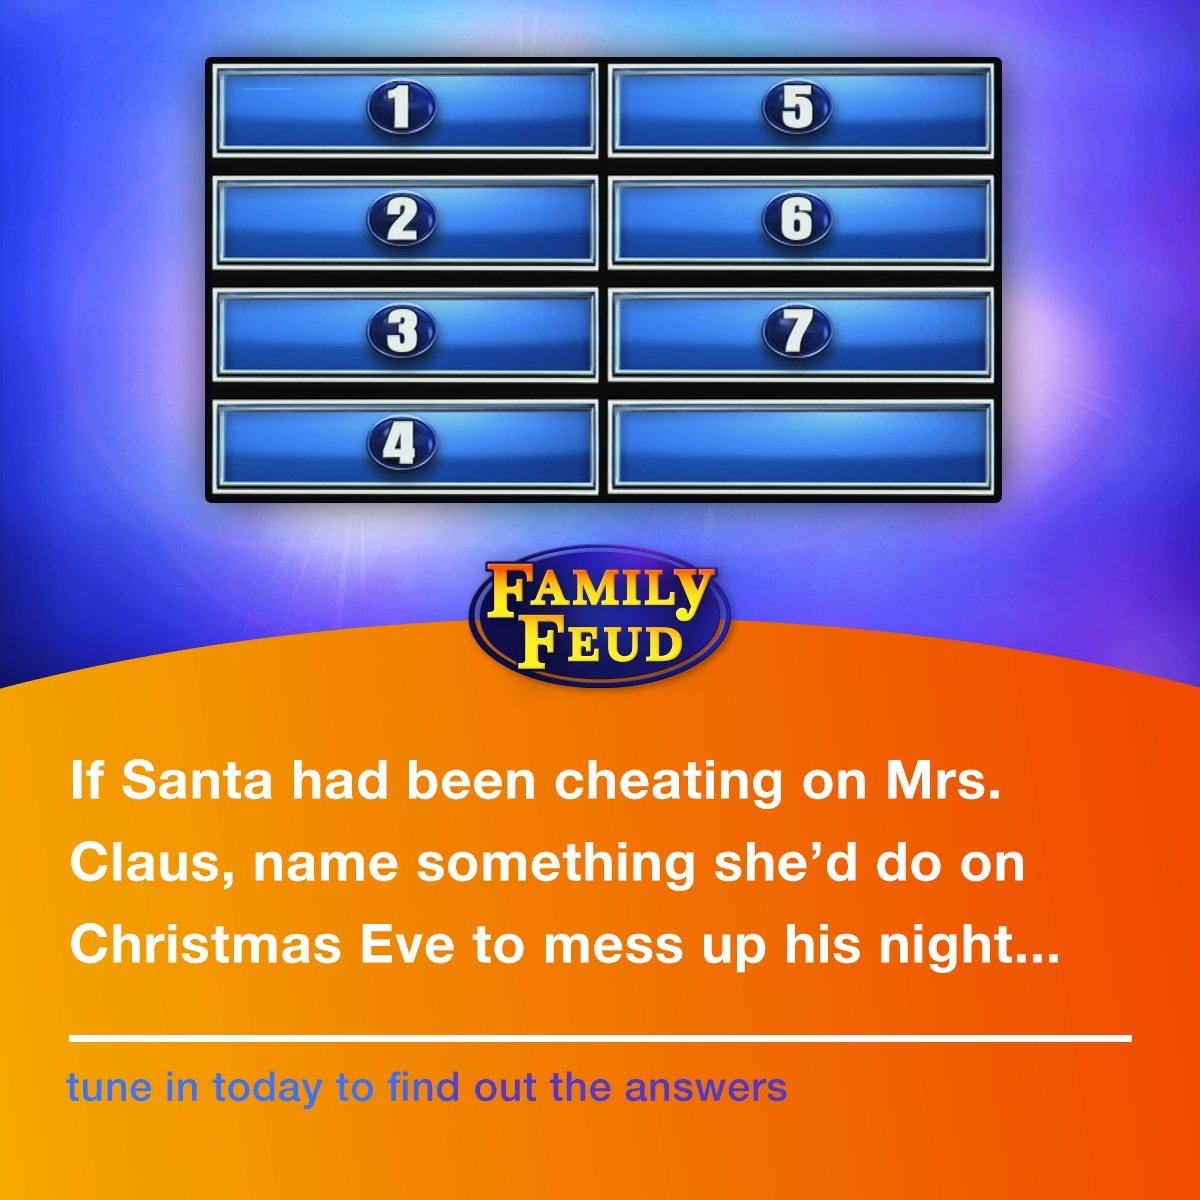 family feud on twitter if santa had been cheating on mrs claus name something shed do on christmaseve to mess up his night tune in today